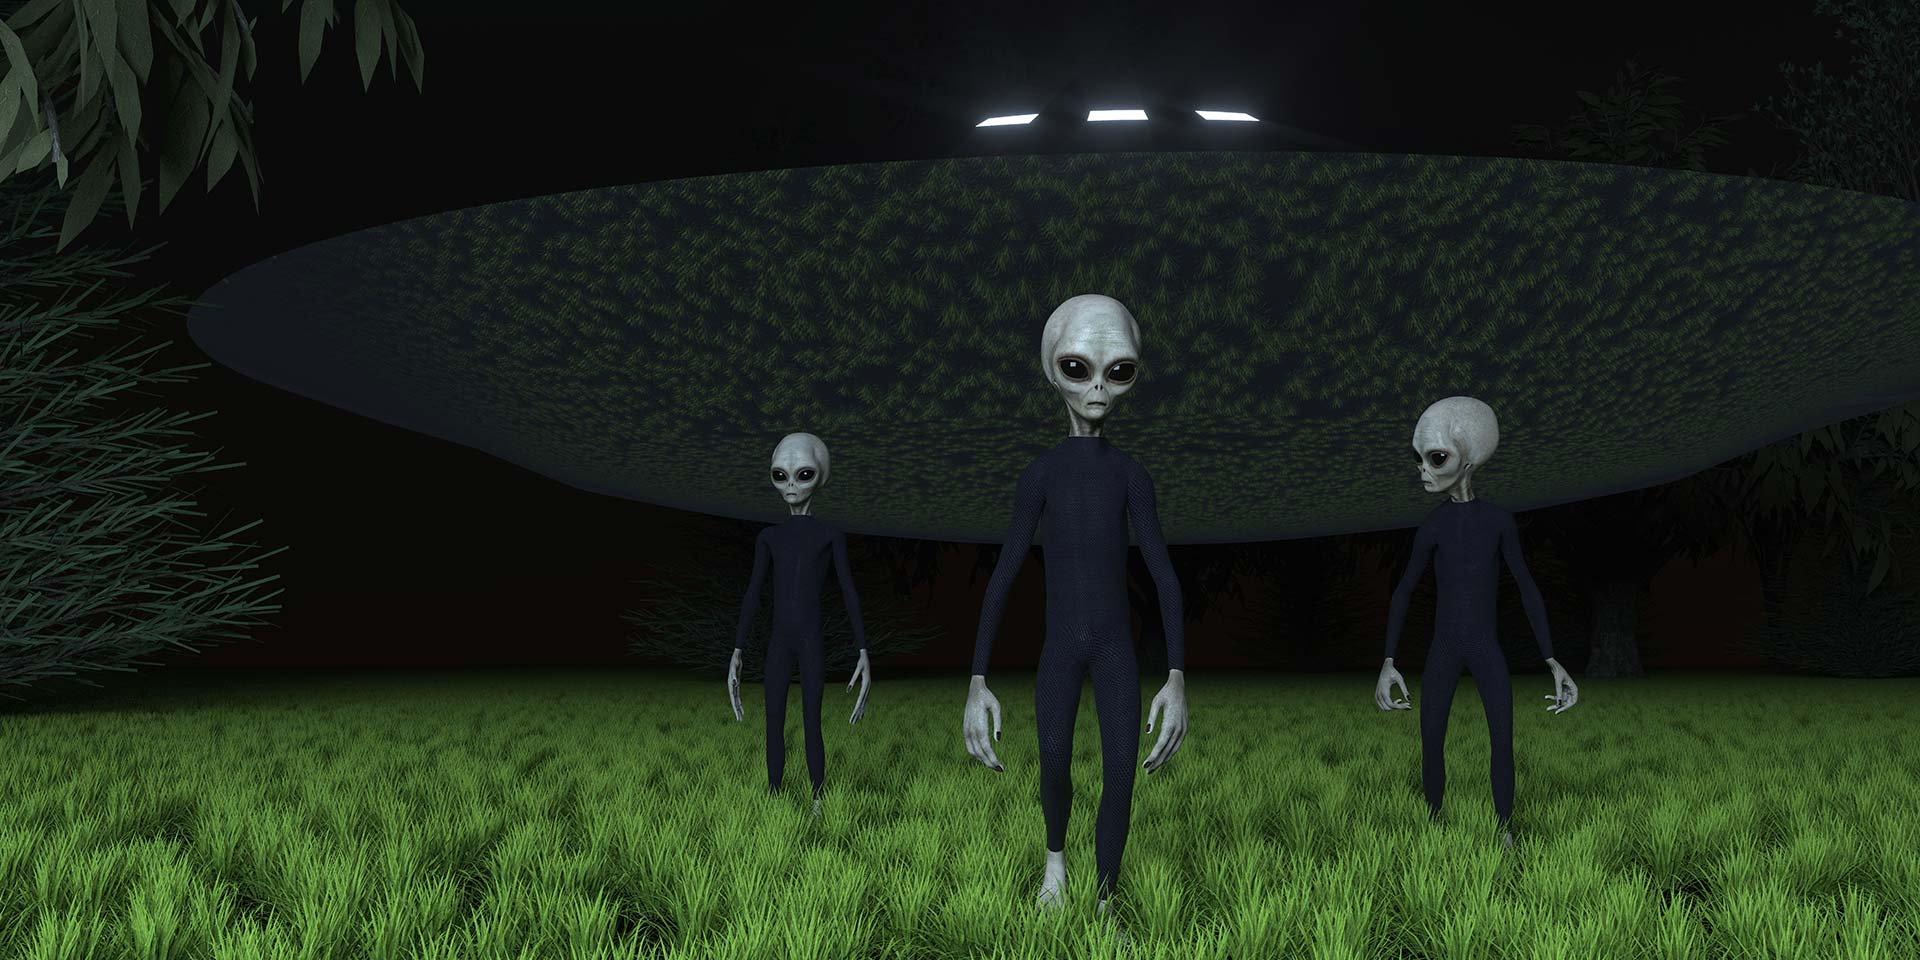 ufo-and-aliens-in-forest-3_0109